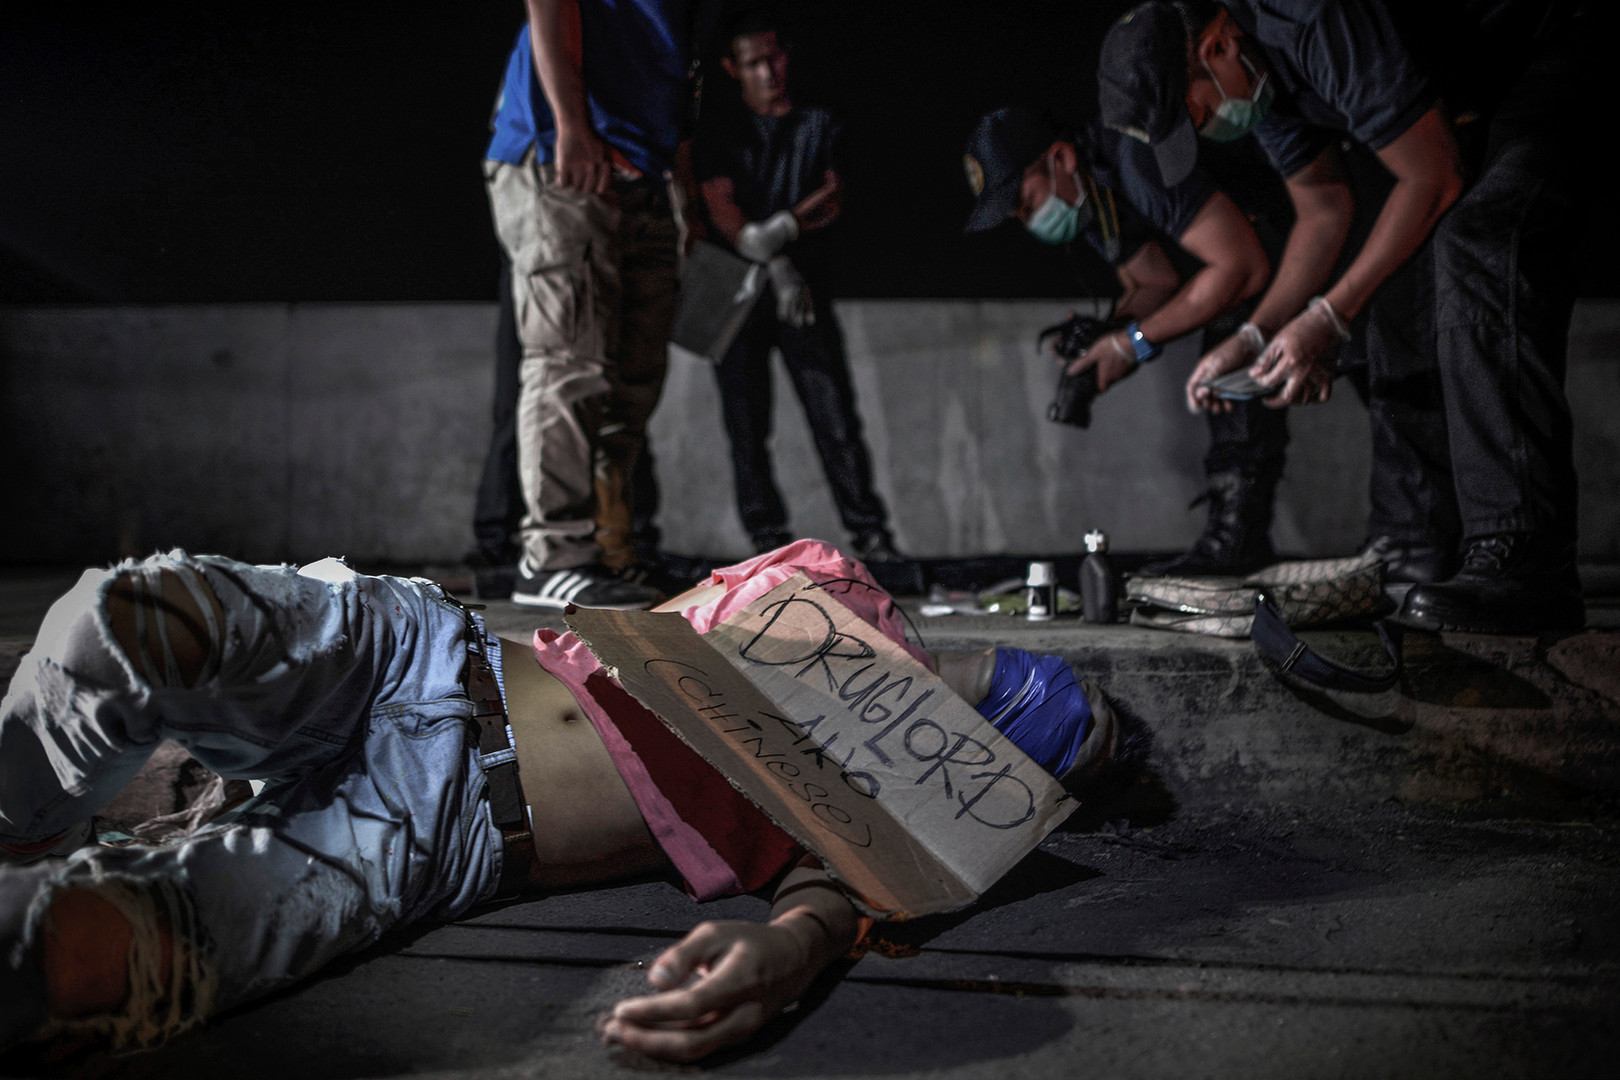 """The body of a man and victim of a vigilante-style execution with his head wrapped in tape lies on a street in Manila, Philippines, July 28, 2016. A sign placed on next to the body reads """"I am a Chinese drug lord."""""""